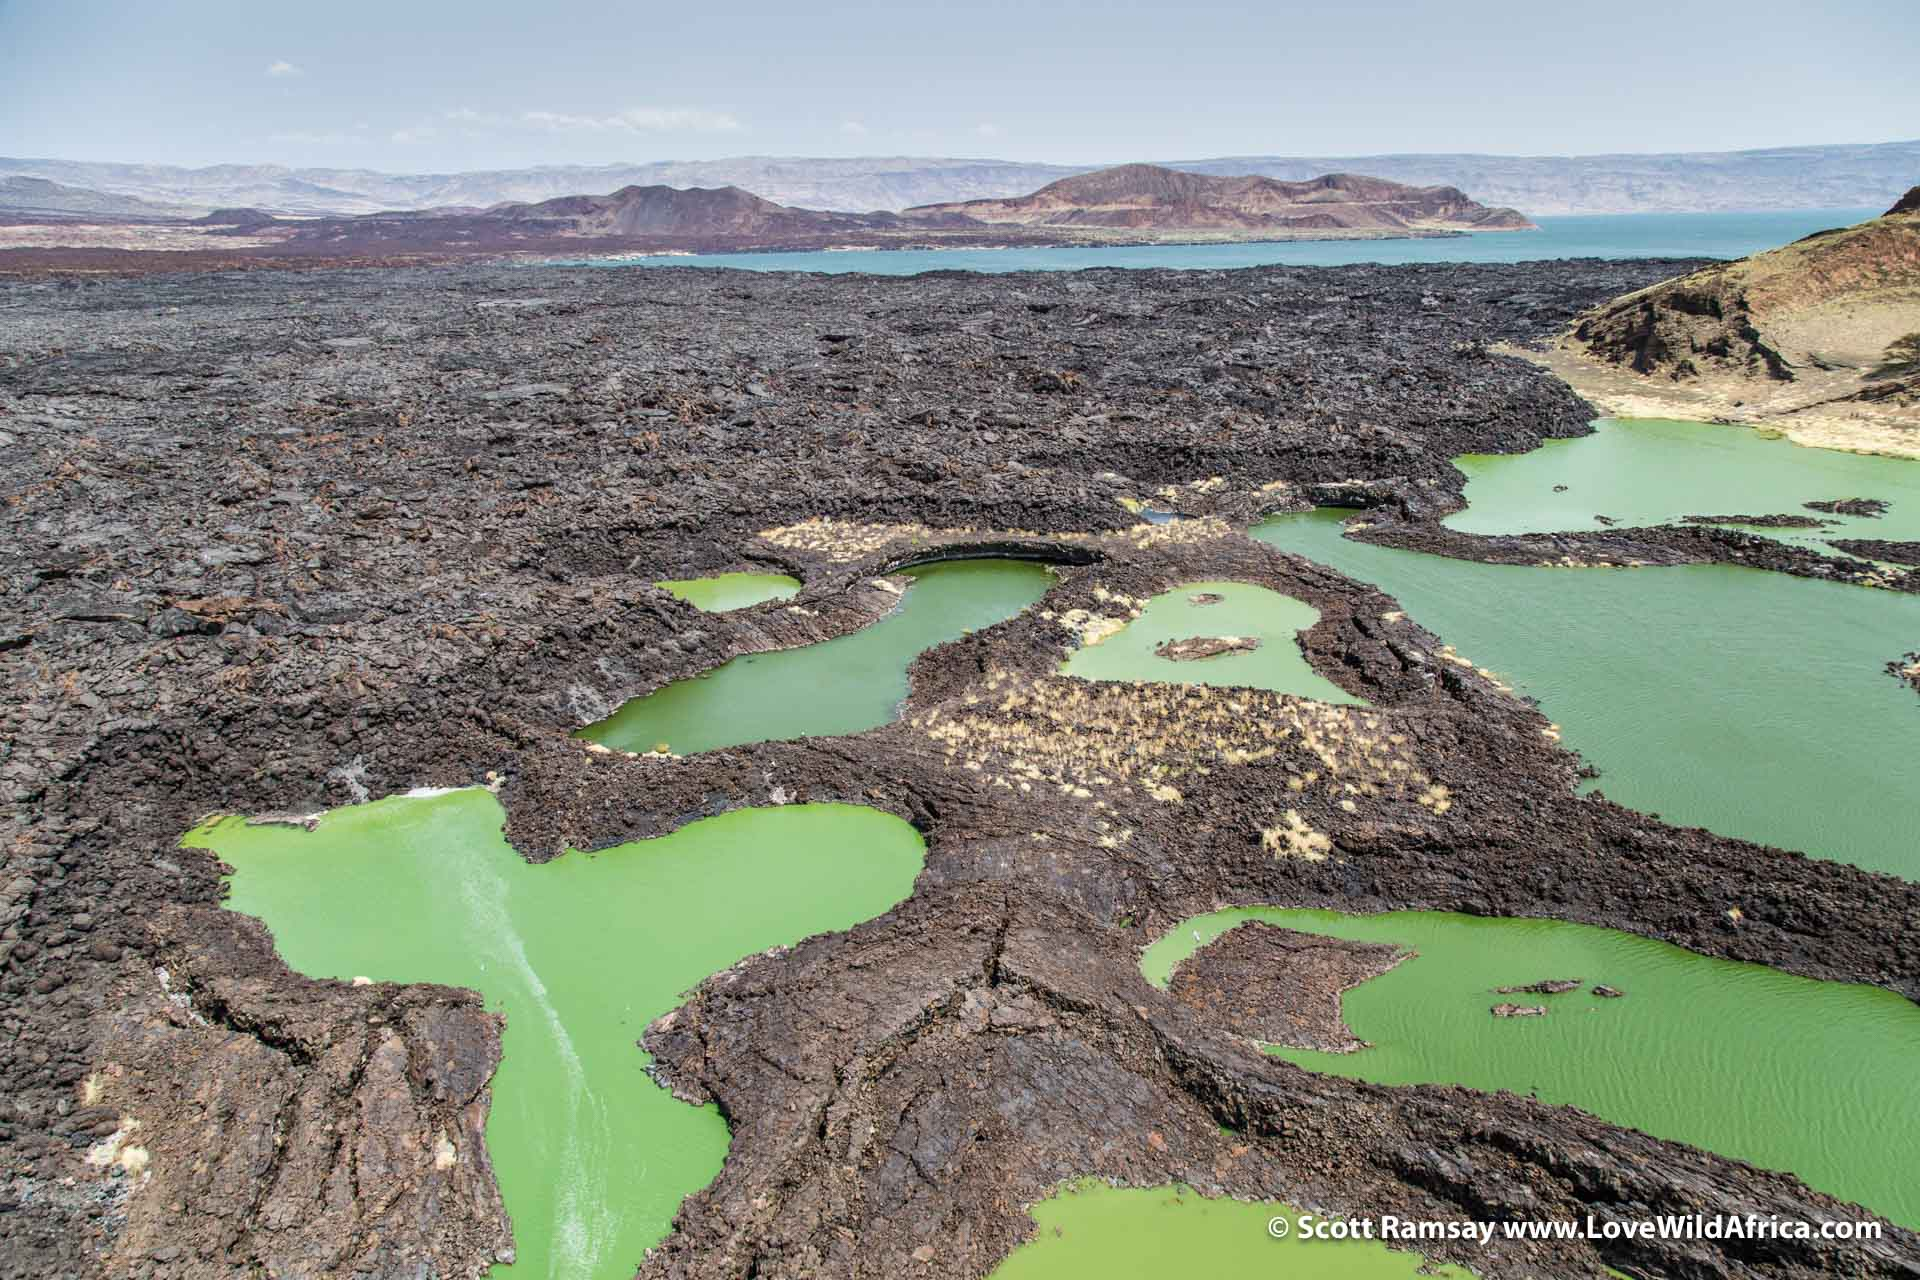 The trapped waters of the lava lakes are green because of algal growth, while the turquoise waters of Lake Turkana lie in the background...